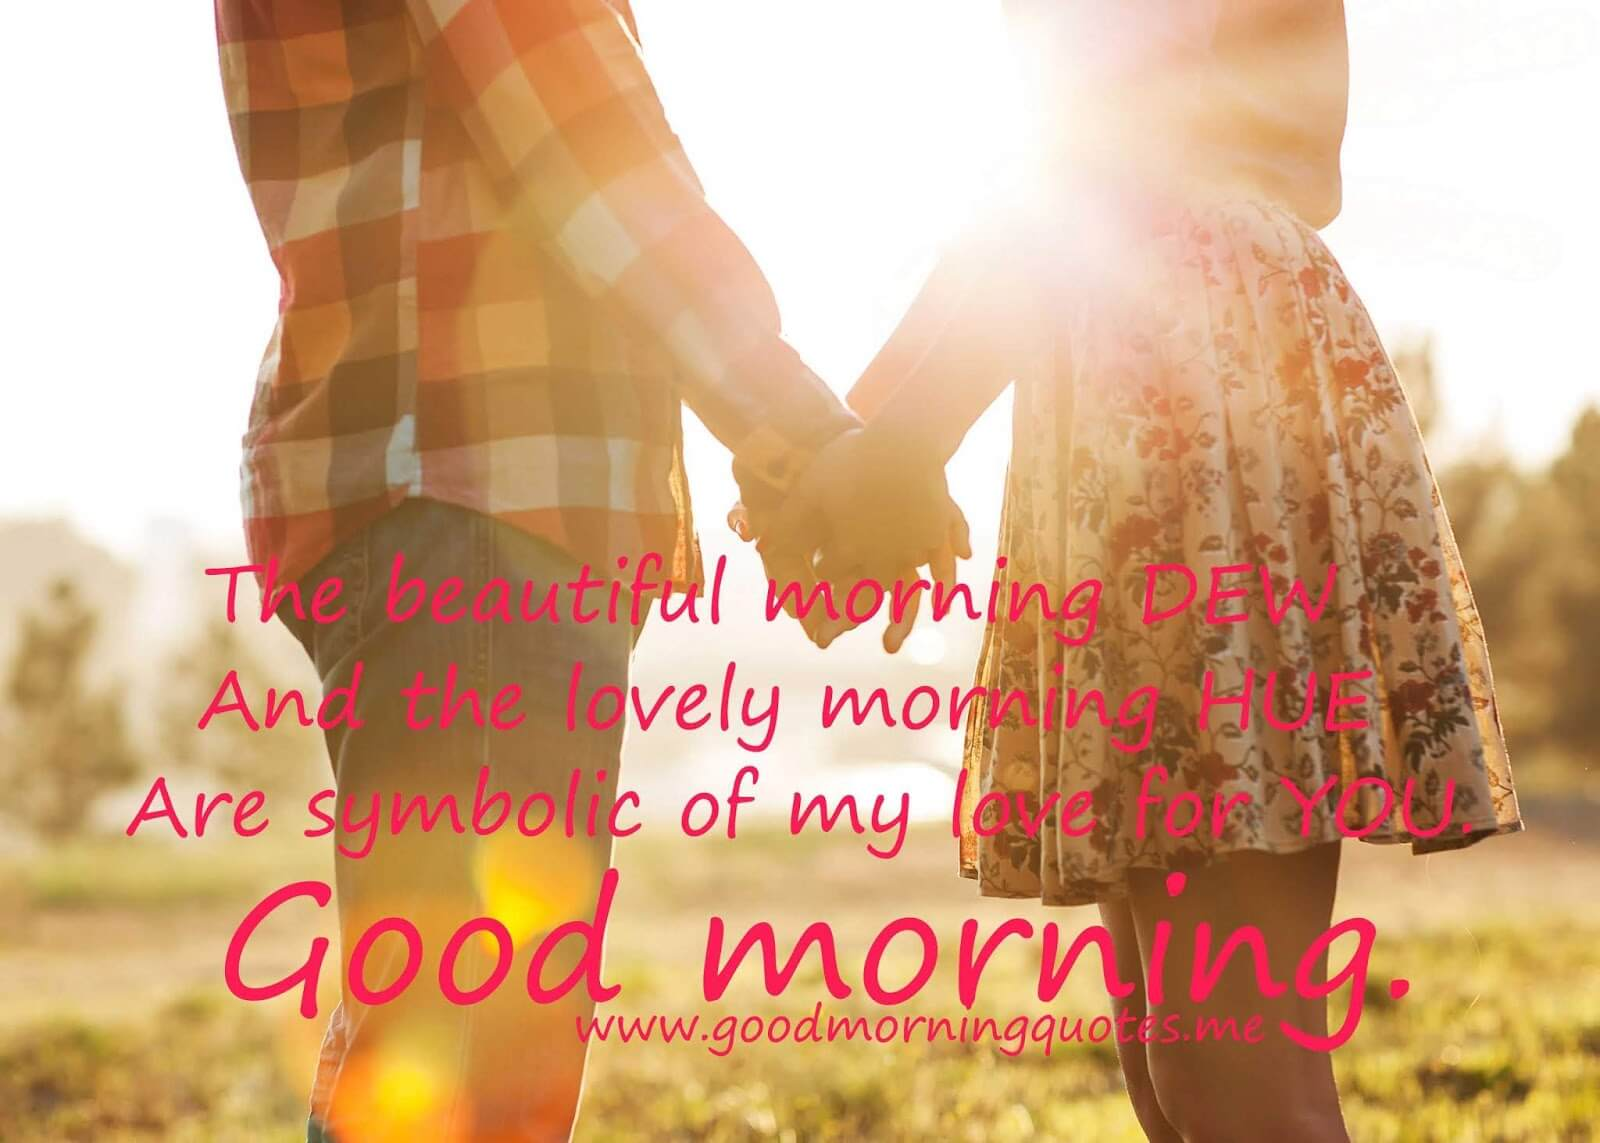 40 Romantic Good Morning Image With Love Couple